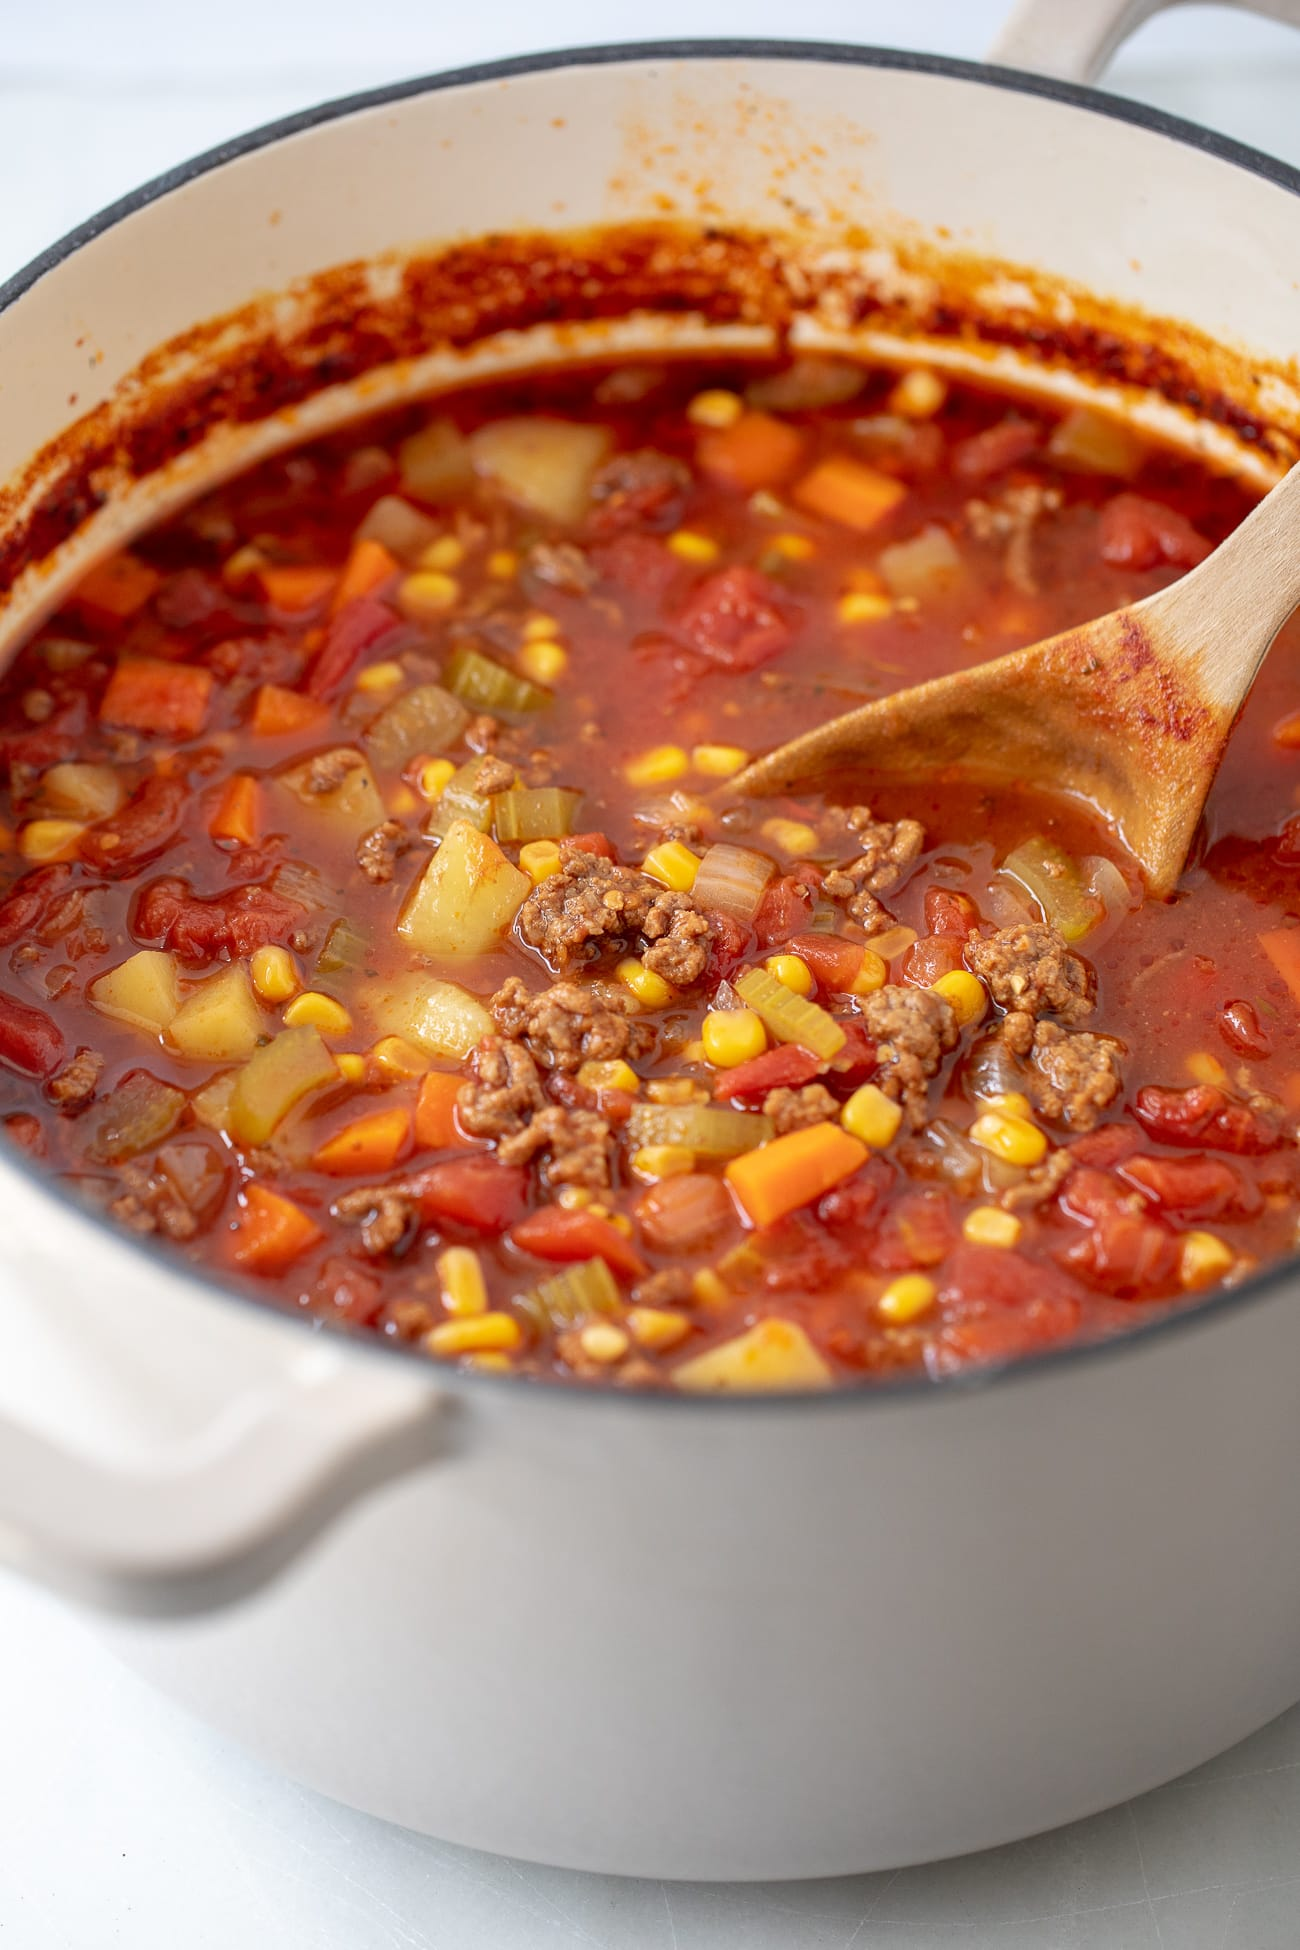 Hamburger Soup Recipe - This tasty ground beef vegetable soup is loaded with potatoes, meat, and veggies in a savory broth.